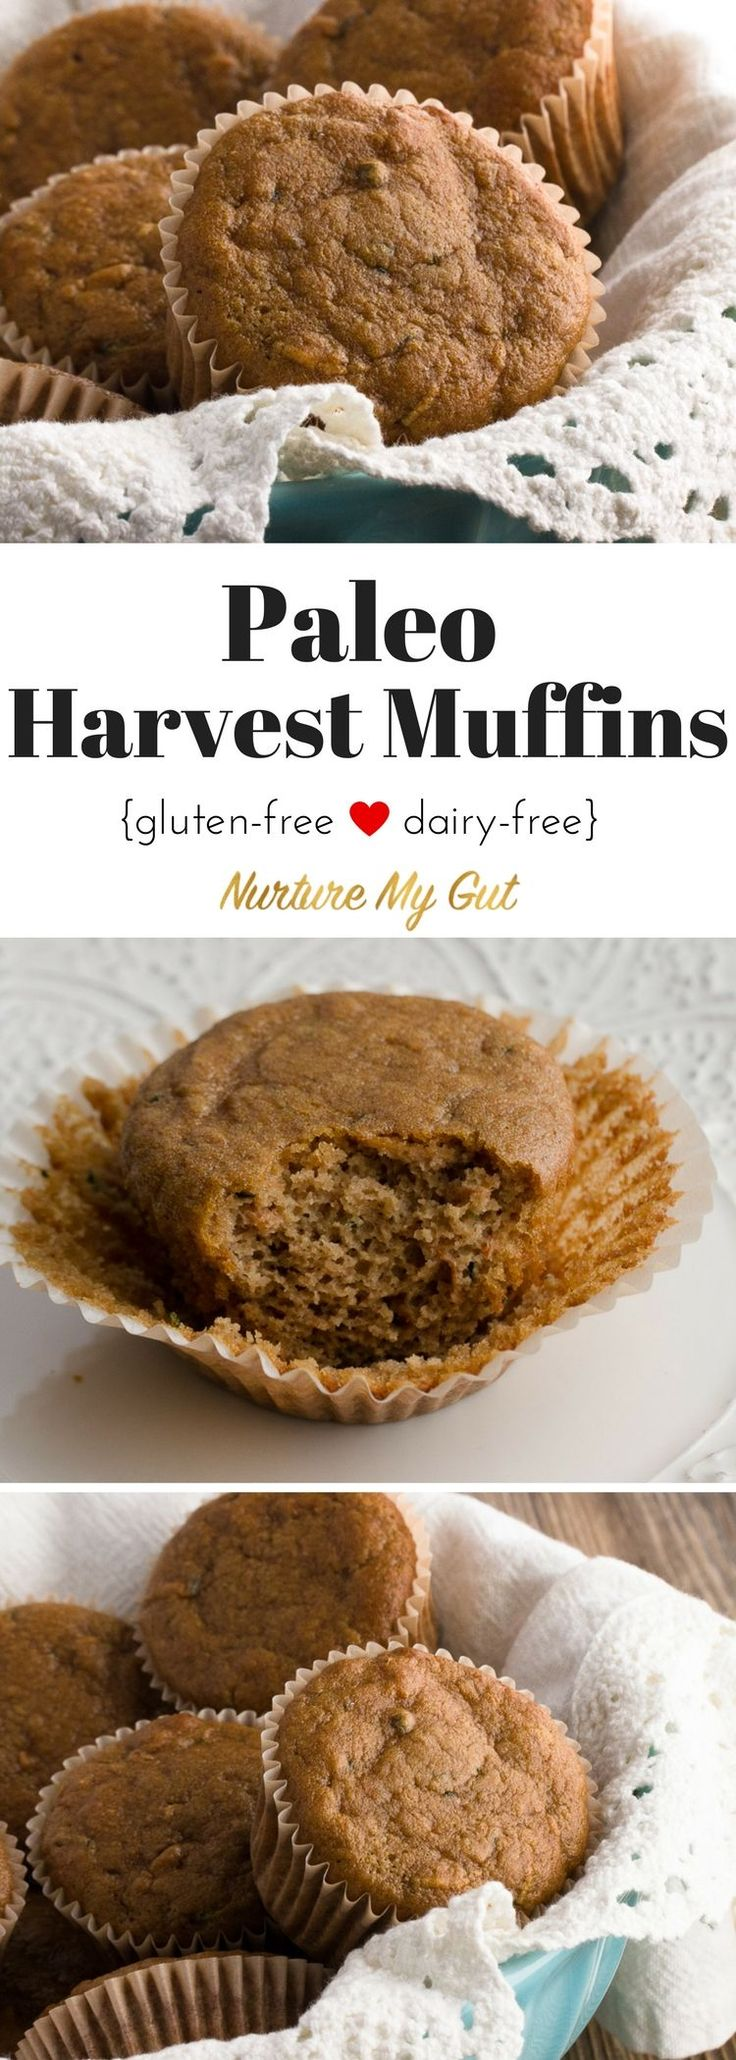 These delicious Paleo Harvest Muffins are a healthy, veggie packed grab-n-go snack for anytime of the day. These Paleo Harvest Muffins are made with freshly grated zucchini, carrots and apple. If you are trying to get your kids to eat more vegetables, I suggest you try this recipe! Gluten-free, grain free and dairy free.